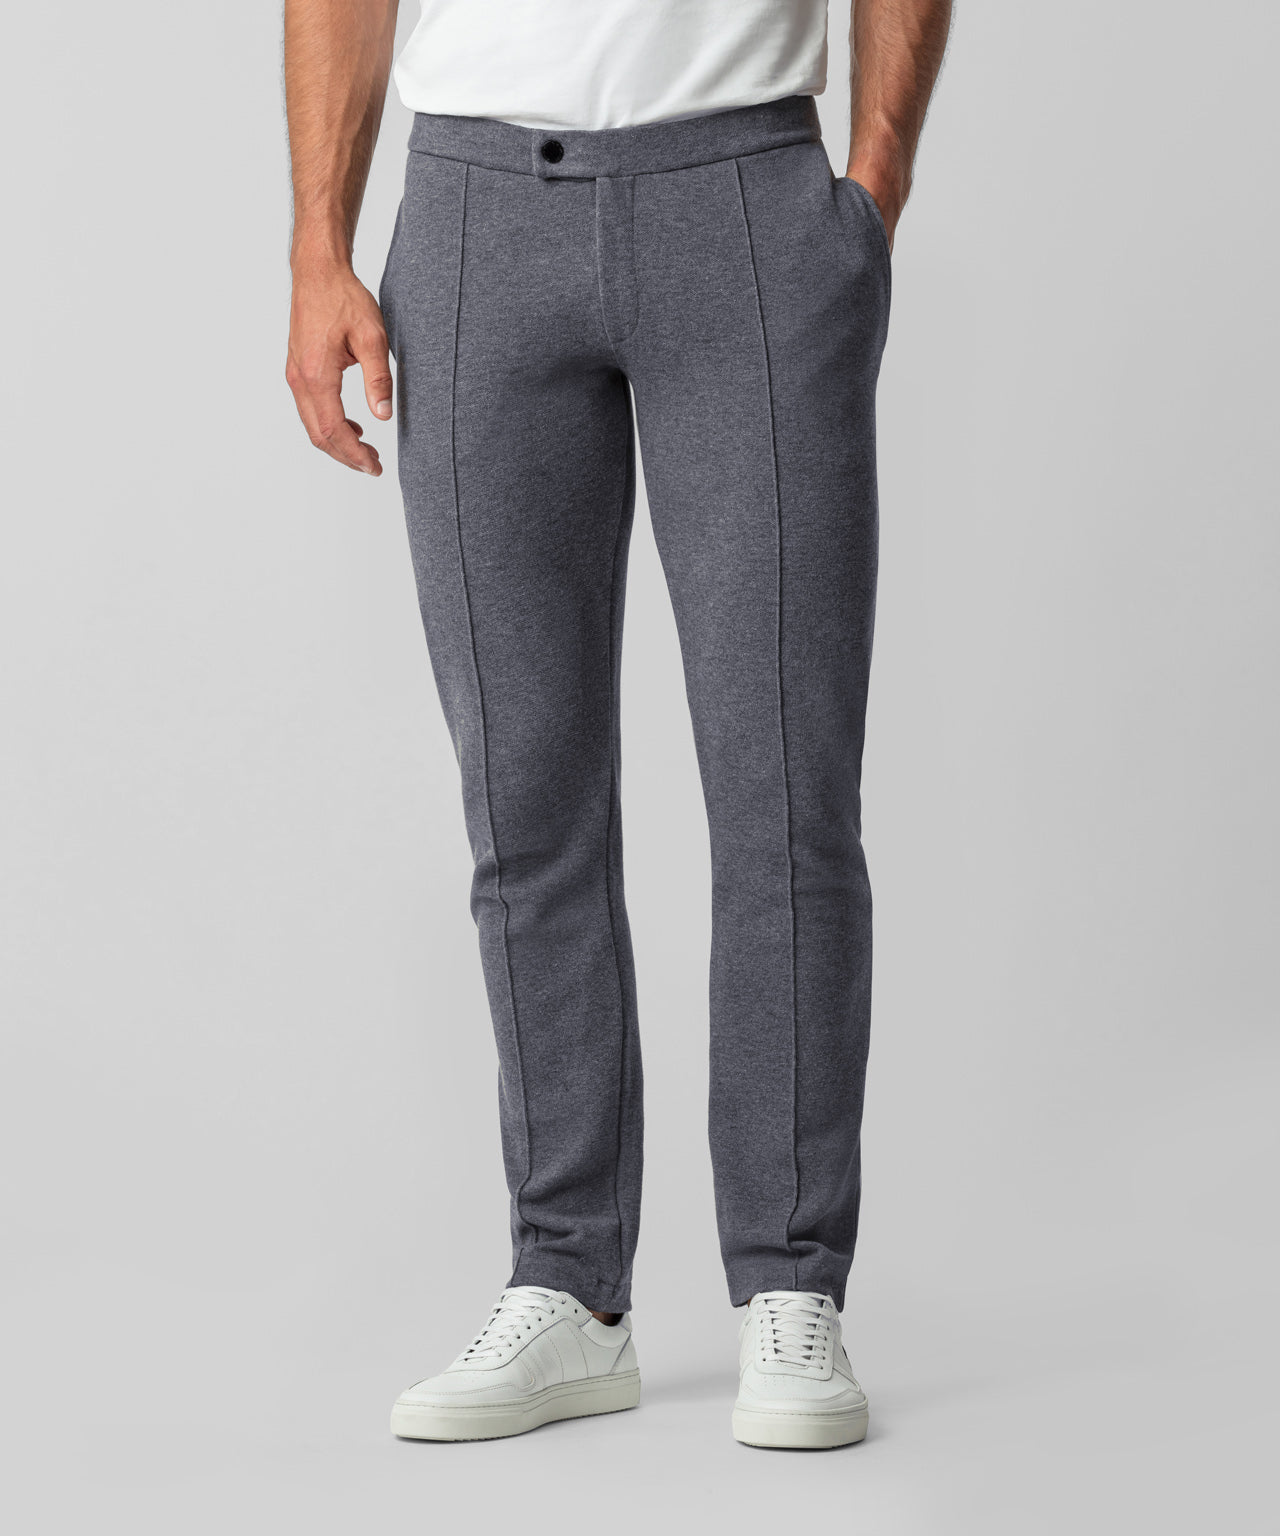 Piqué Tennis Trousers - dark grey melange